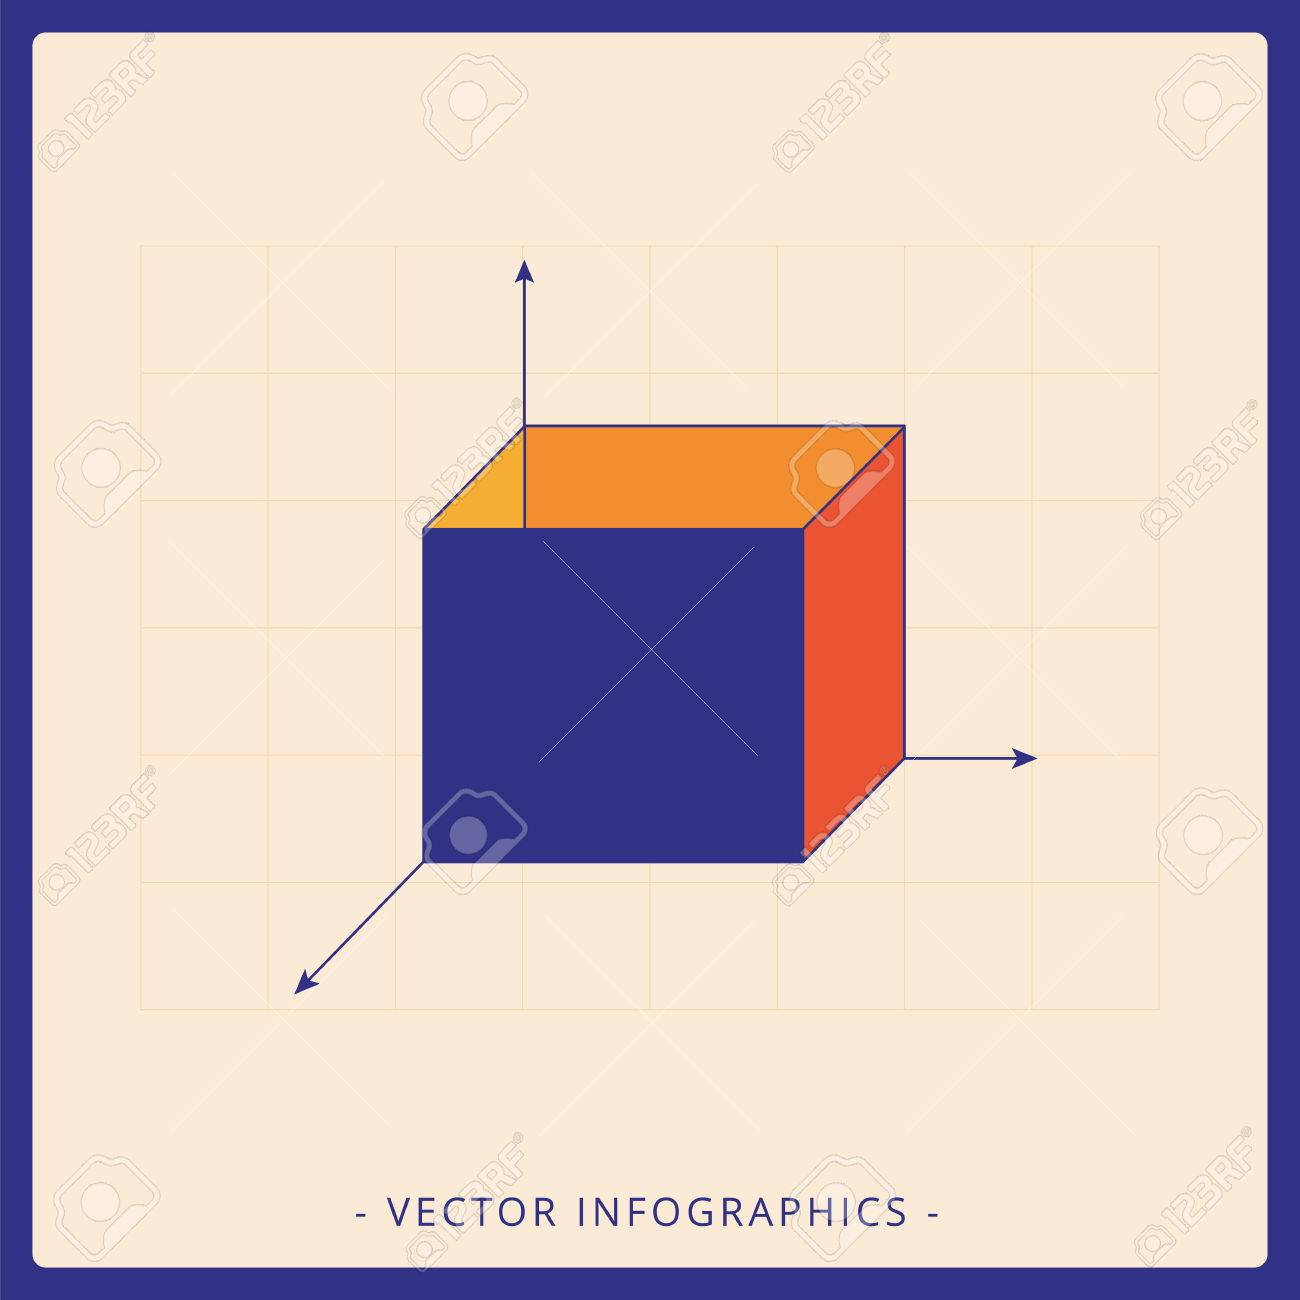 Multicolored Template Of 3d Cube Diagram Representing Abell Business Framework For Strategic Planning Stock Vector